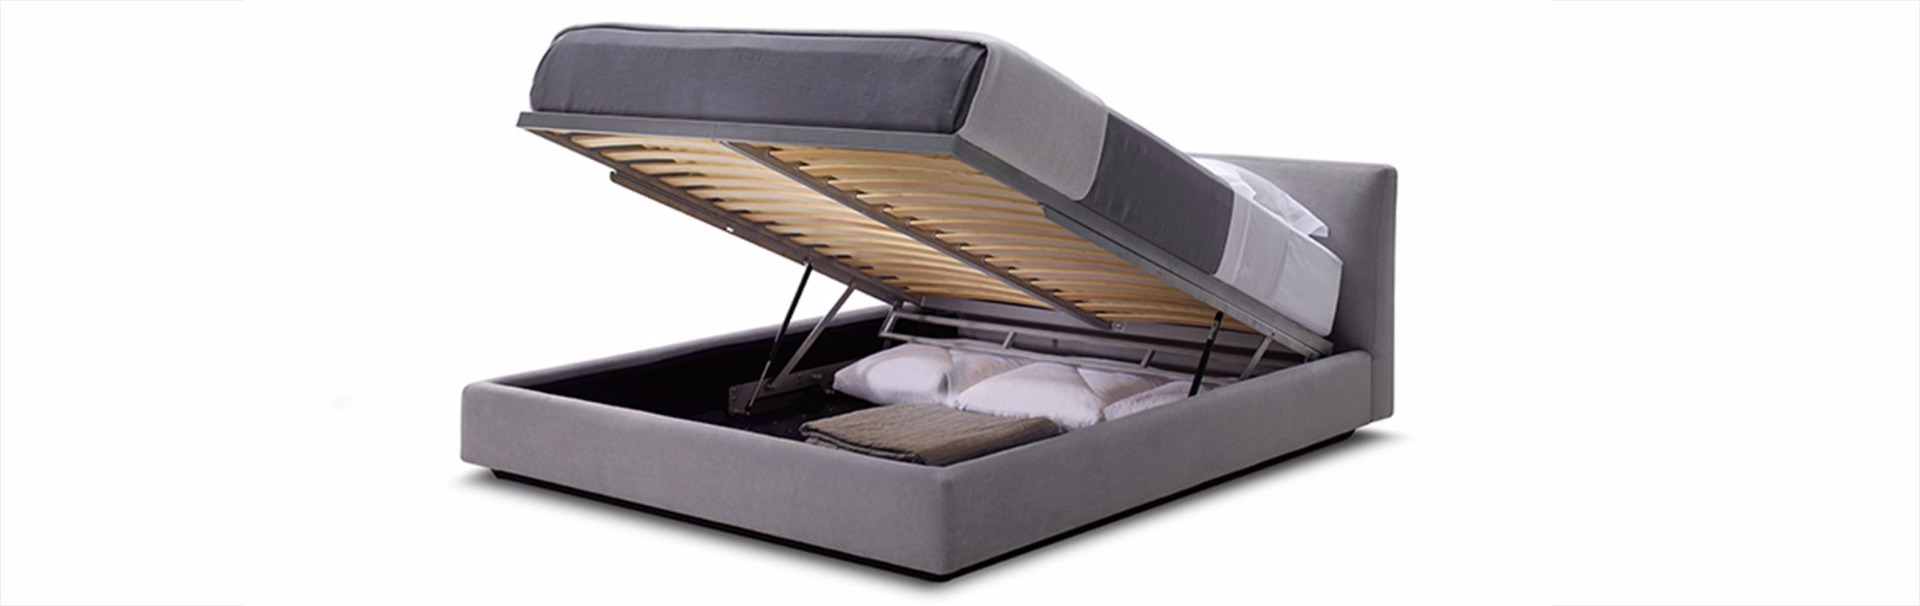 Picture of: Promenade Storage Bed King Size Bed Queen Size Bed Double Size Bed King Single Bed King Living